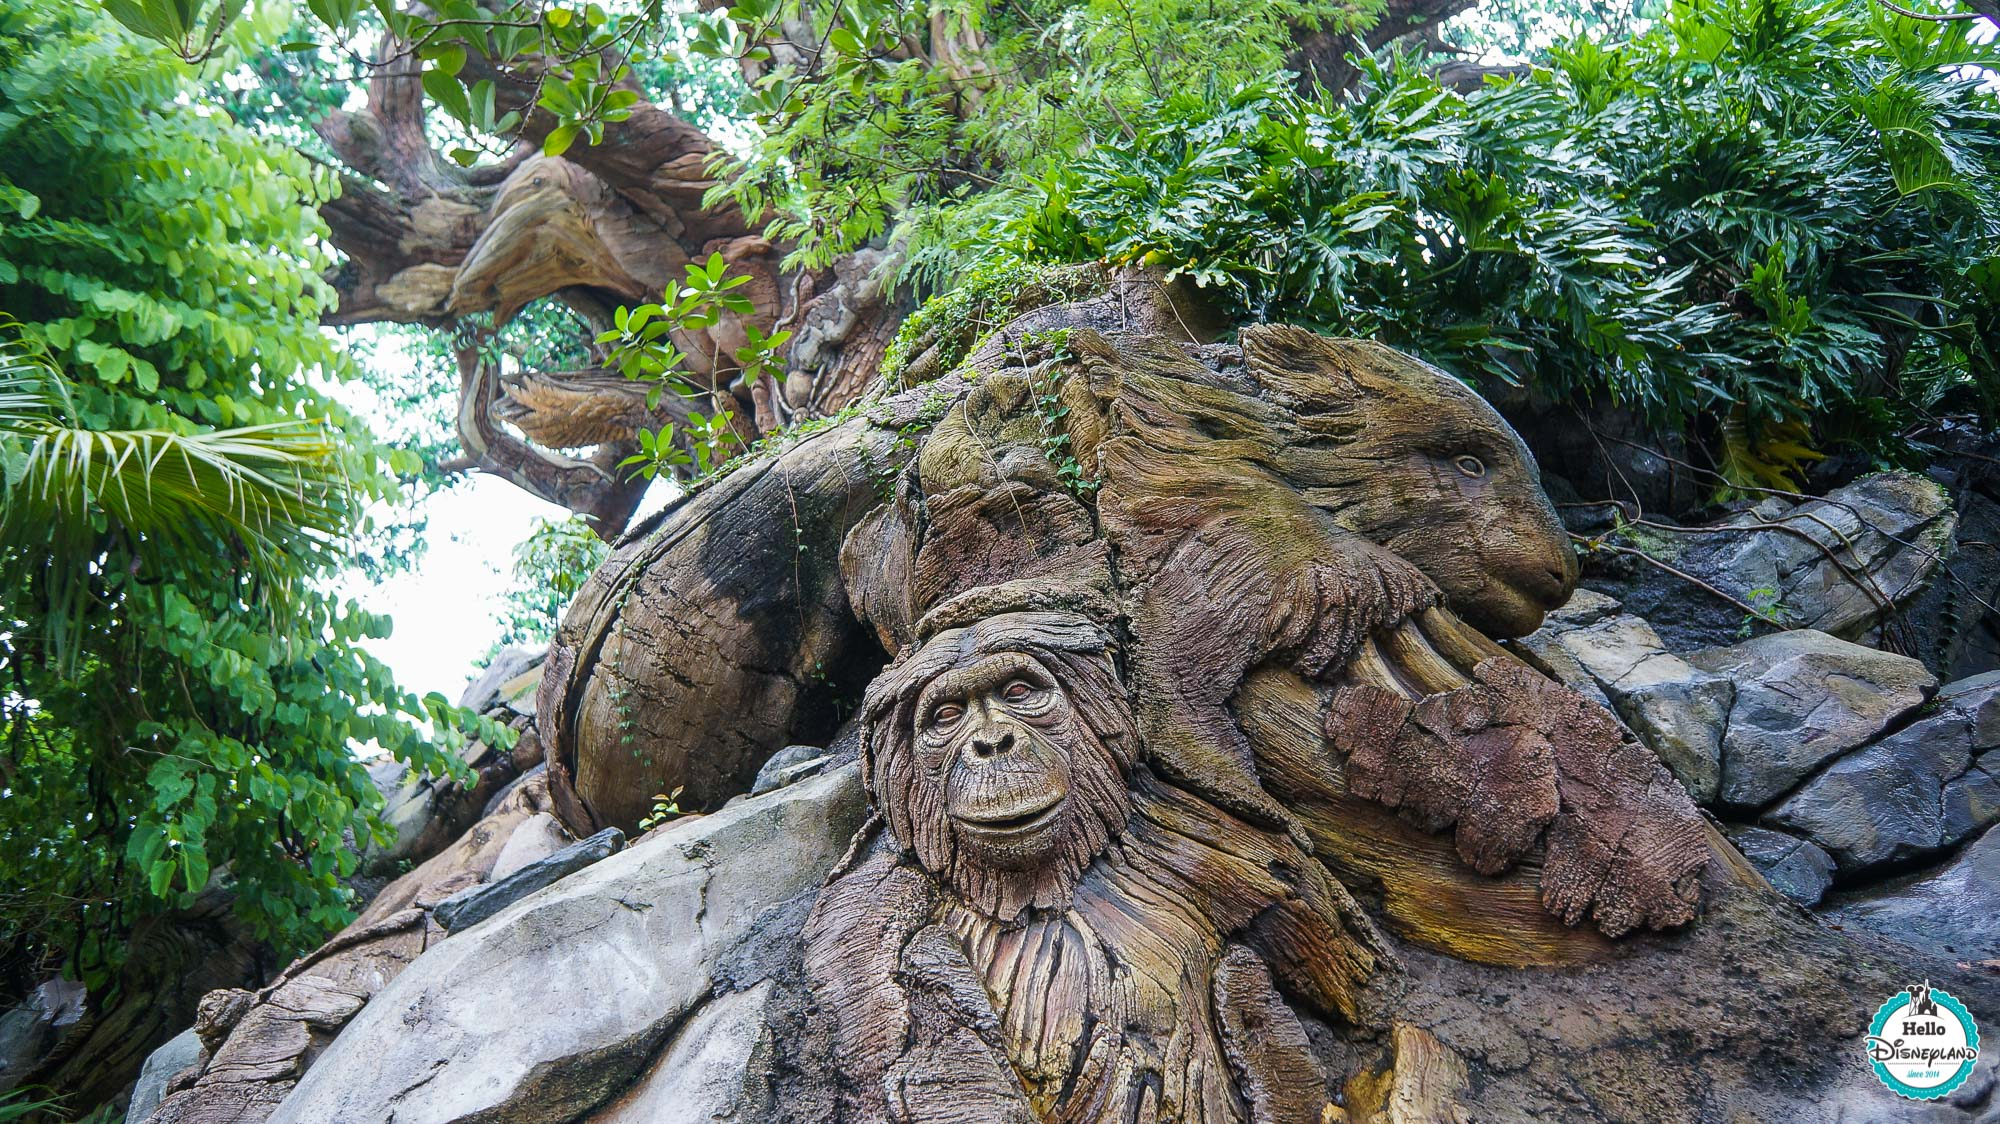 Animal Kingdom - Walt Disney World